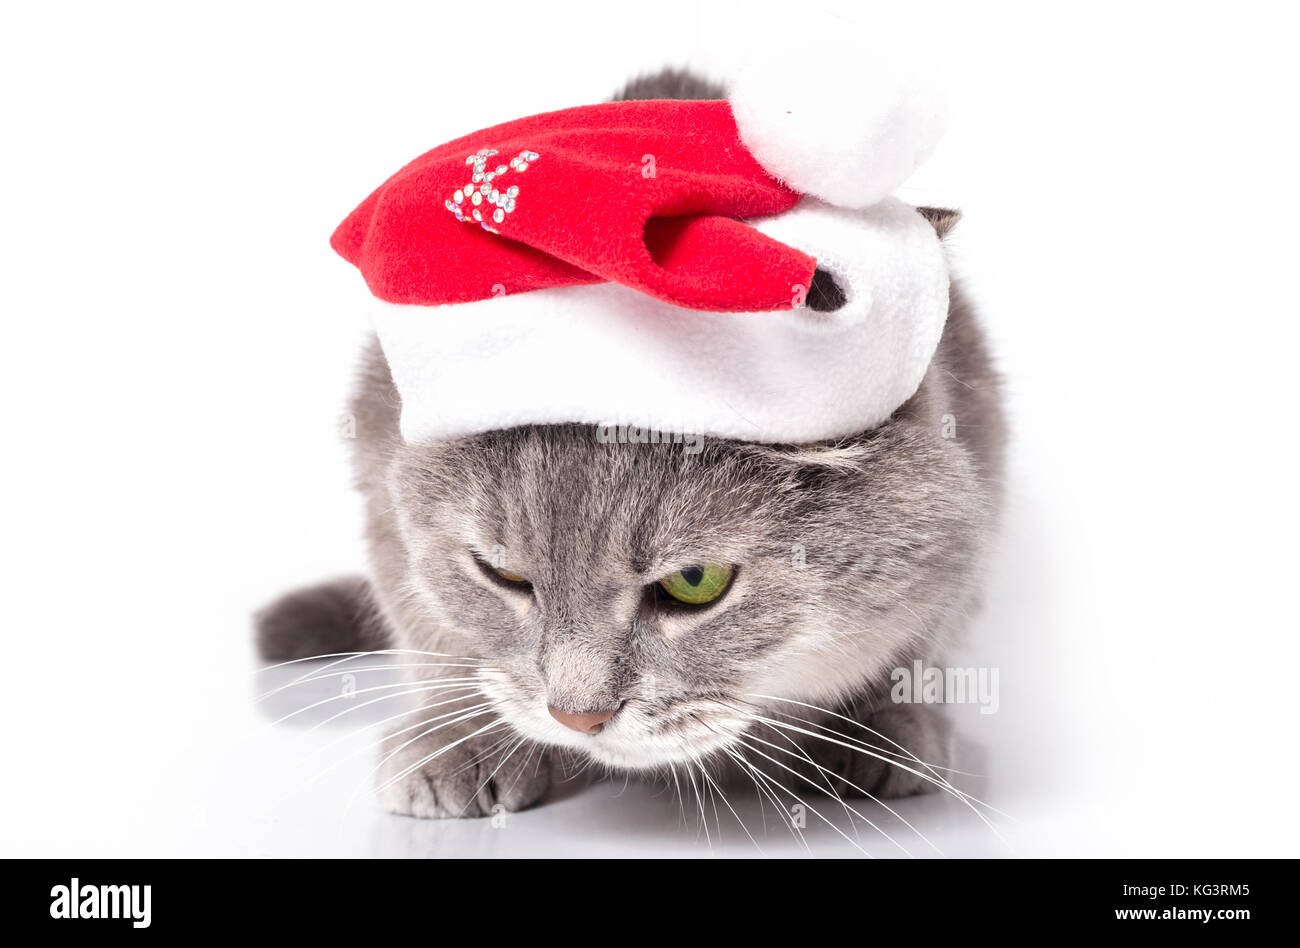 Sad angry cat in Santa Claus's cap. The gray cat in a red New Year's hat has low sat down and has blinked - Stock Image